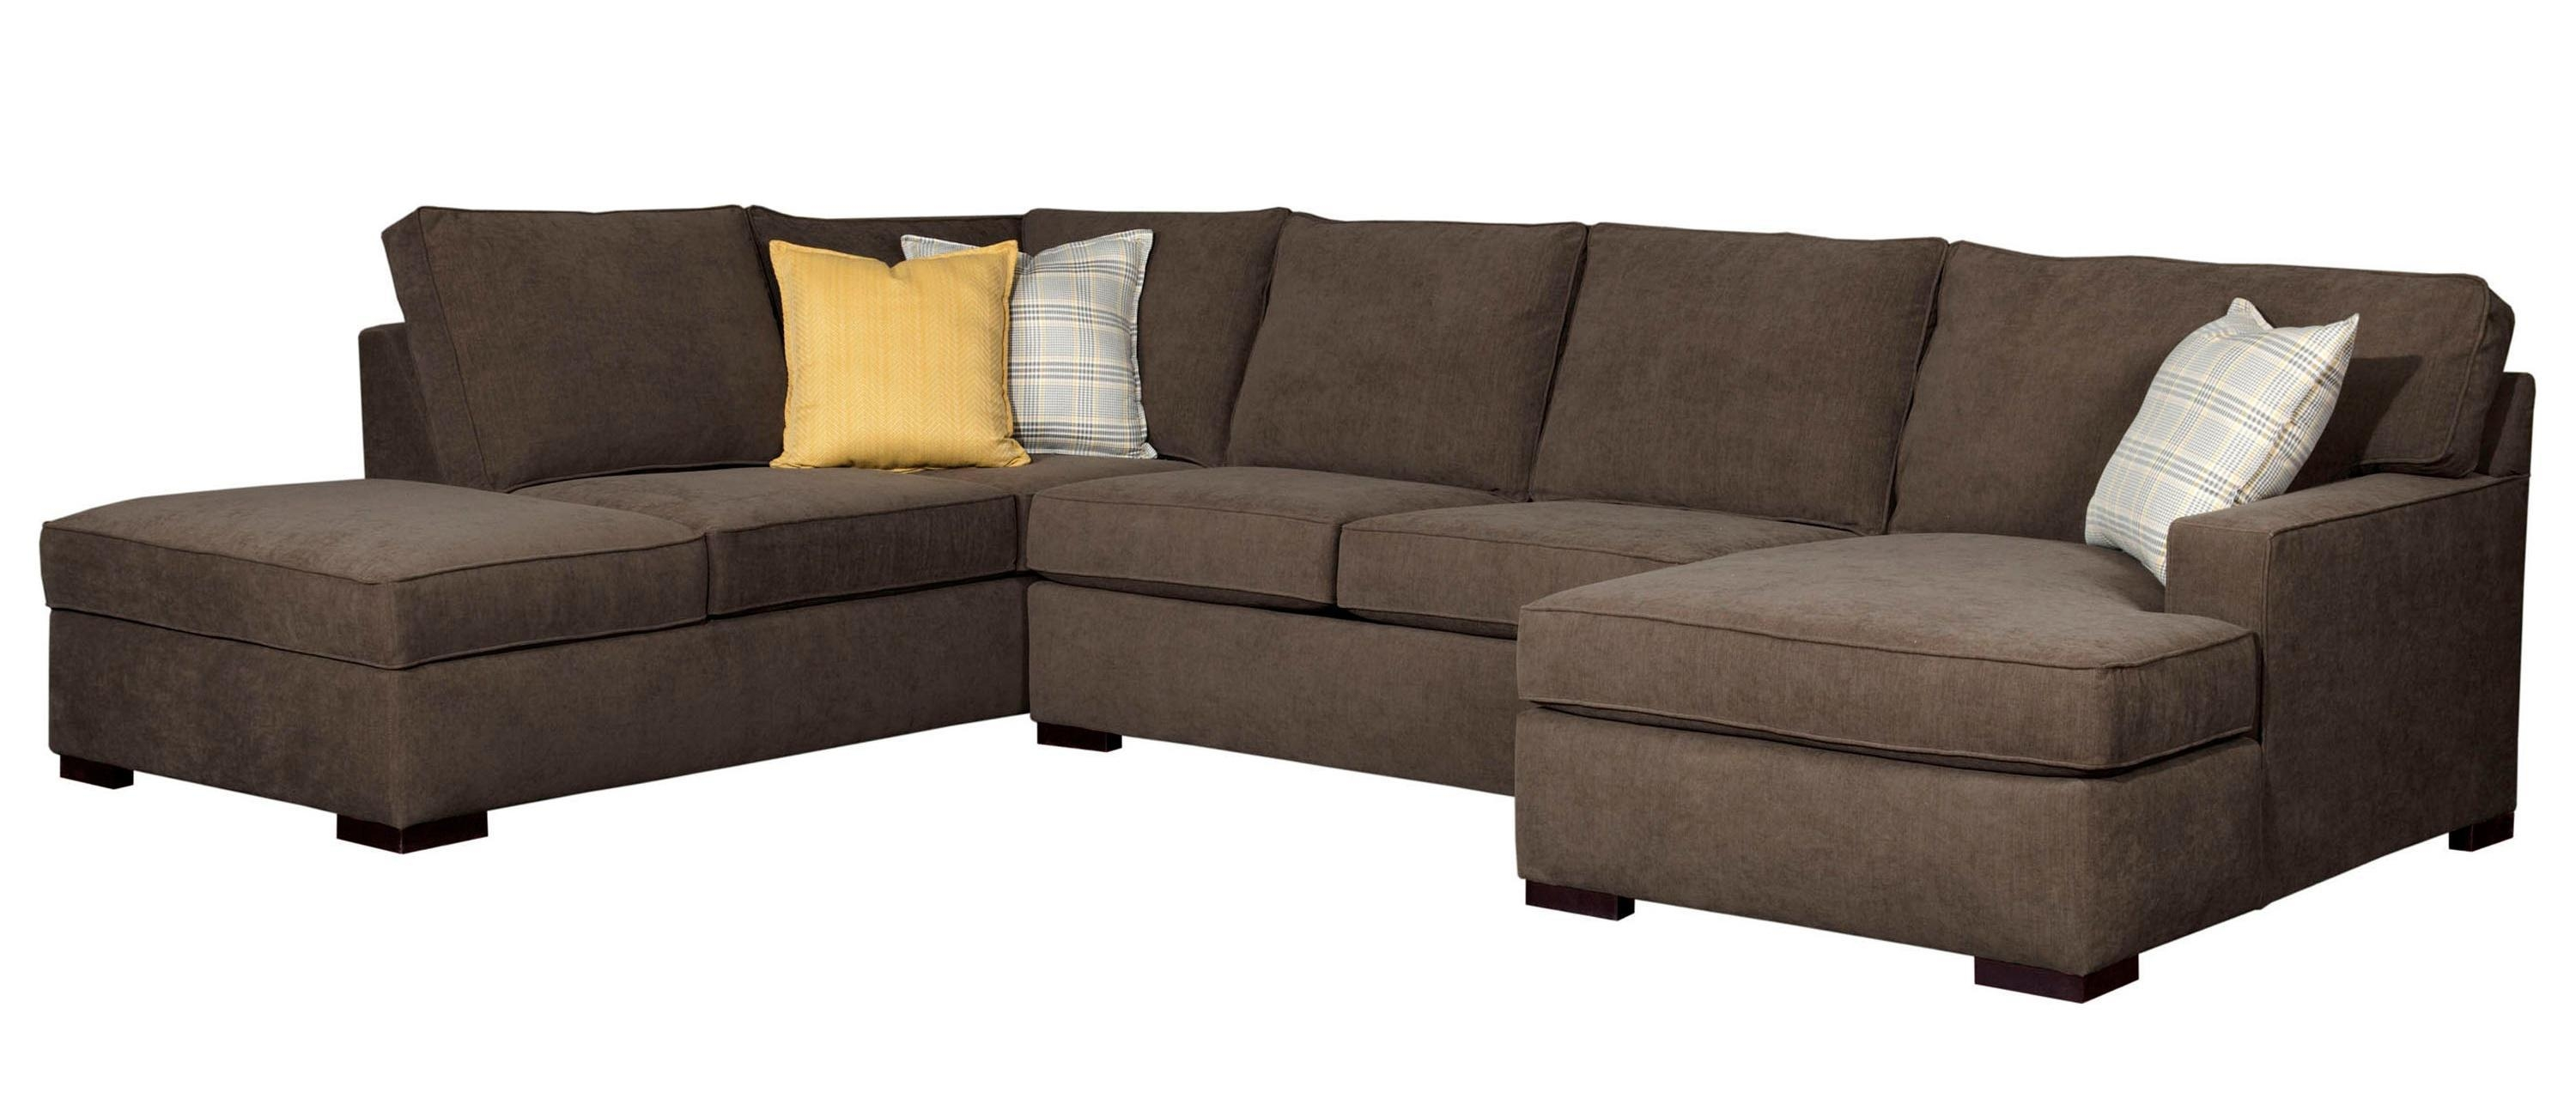 20+ Choices Of Sectional Sofas Portland